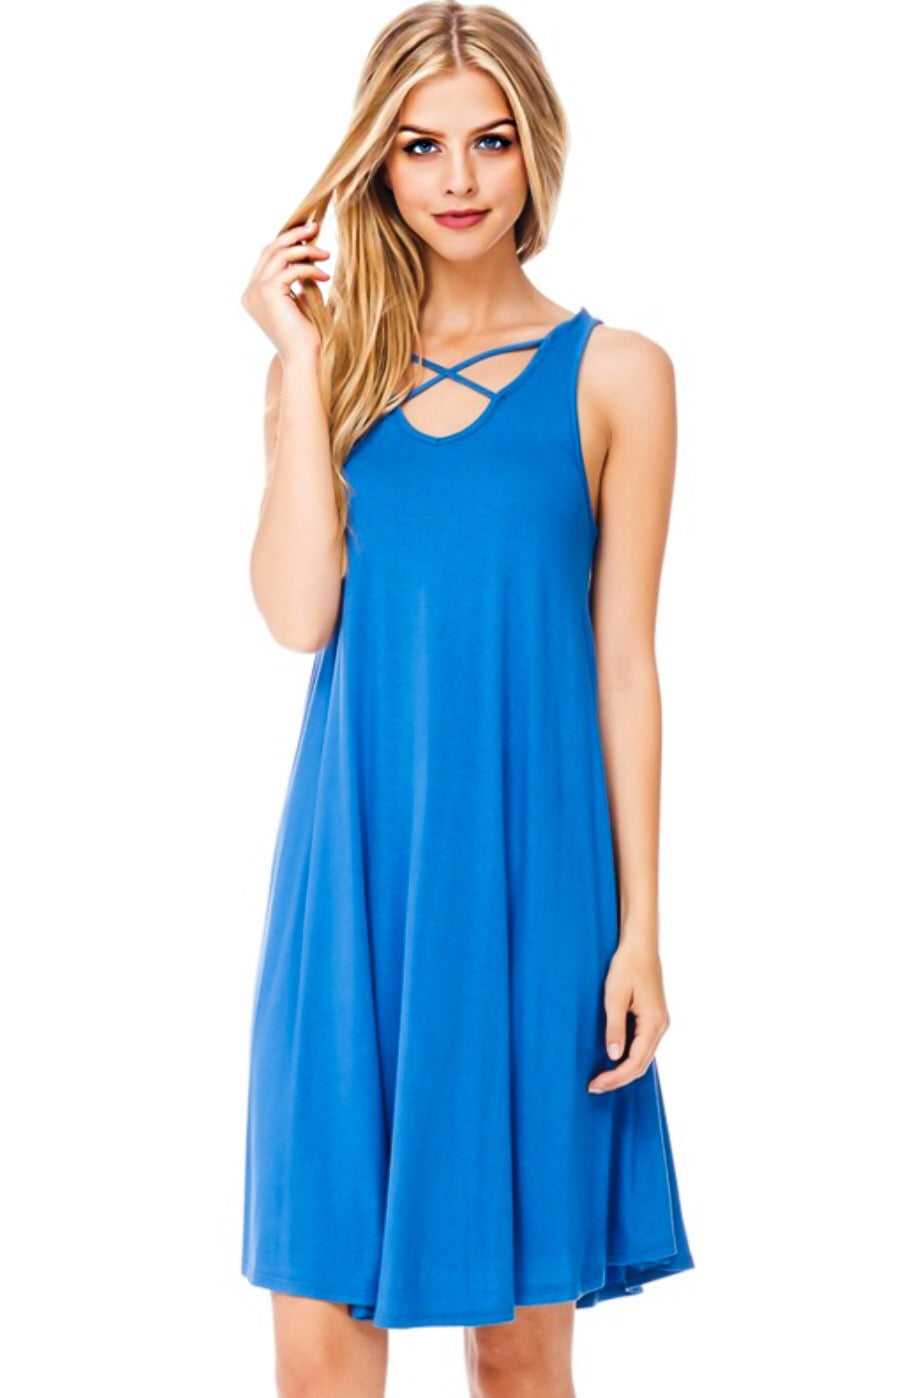 Caroline Blue Criss Cross Dress, SMALL 4/6